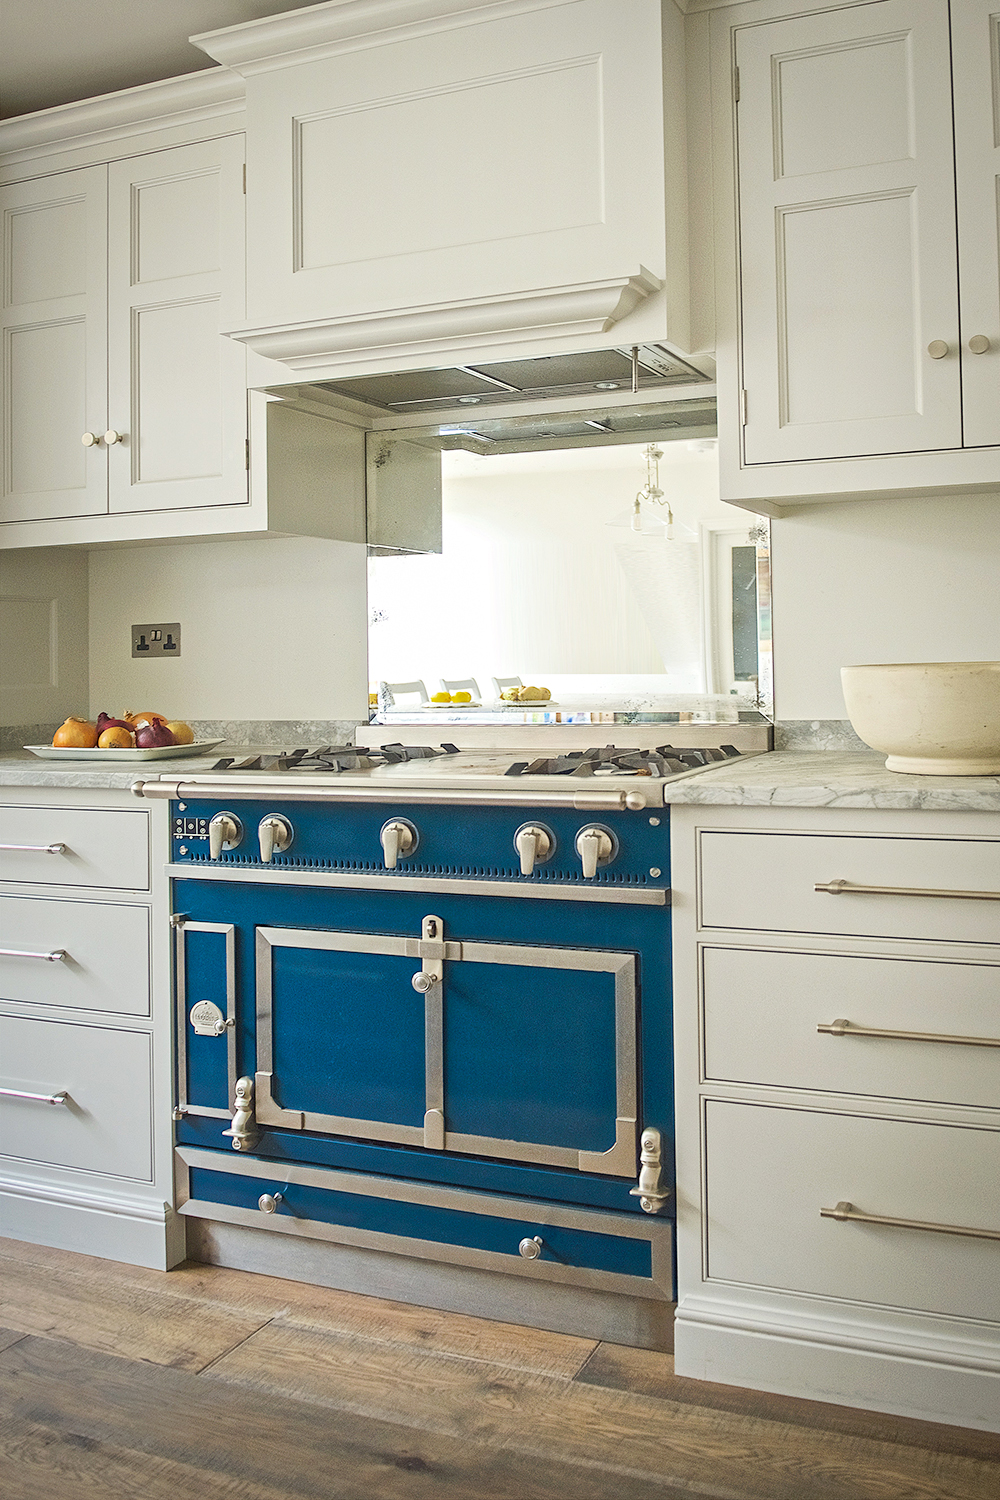 La Cornue range cooker in blue with antique mirror splash back and shaker cabinets with classic cornice with brushed chrome handles.